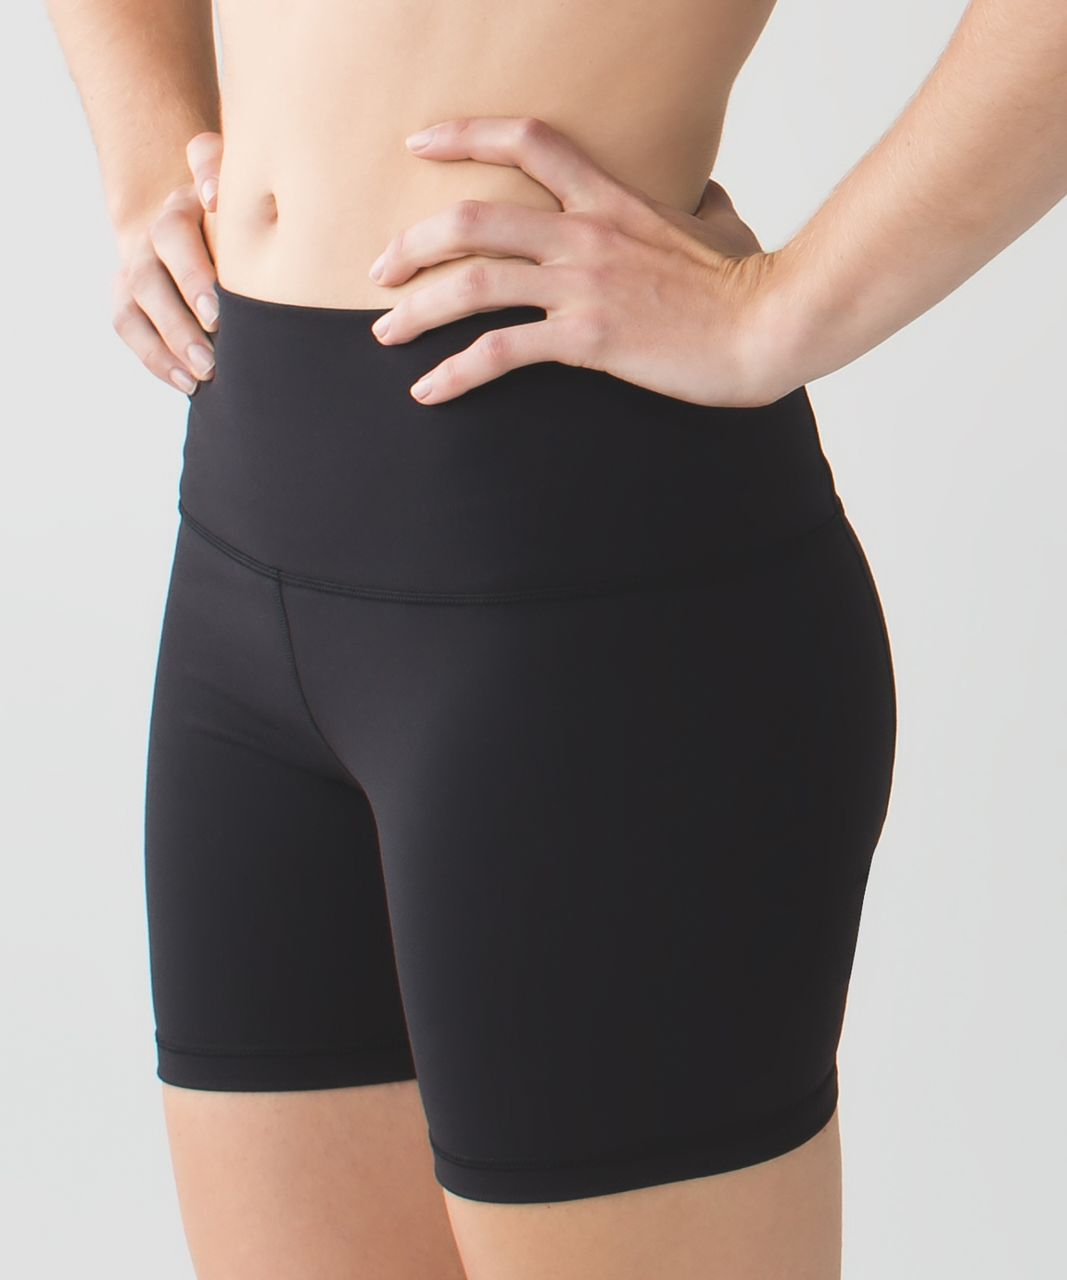 Lululemon Groove Short II (Regular) *Full-On Luon - Black